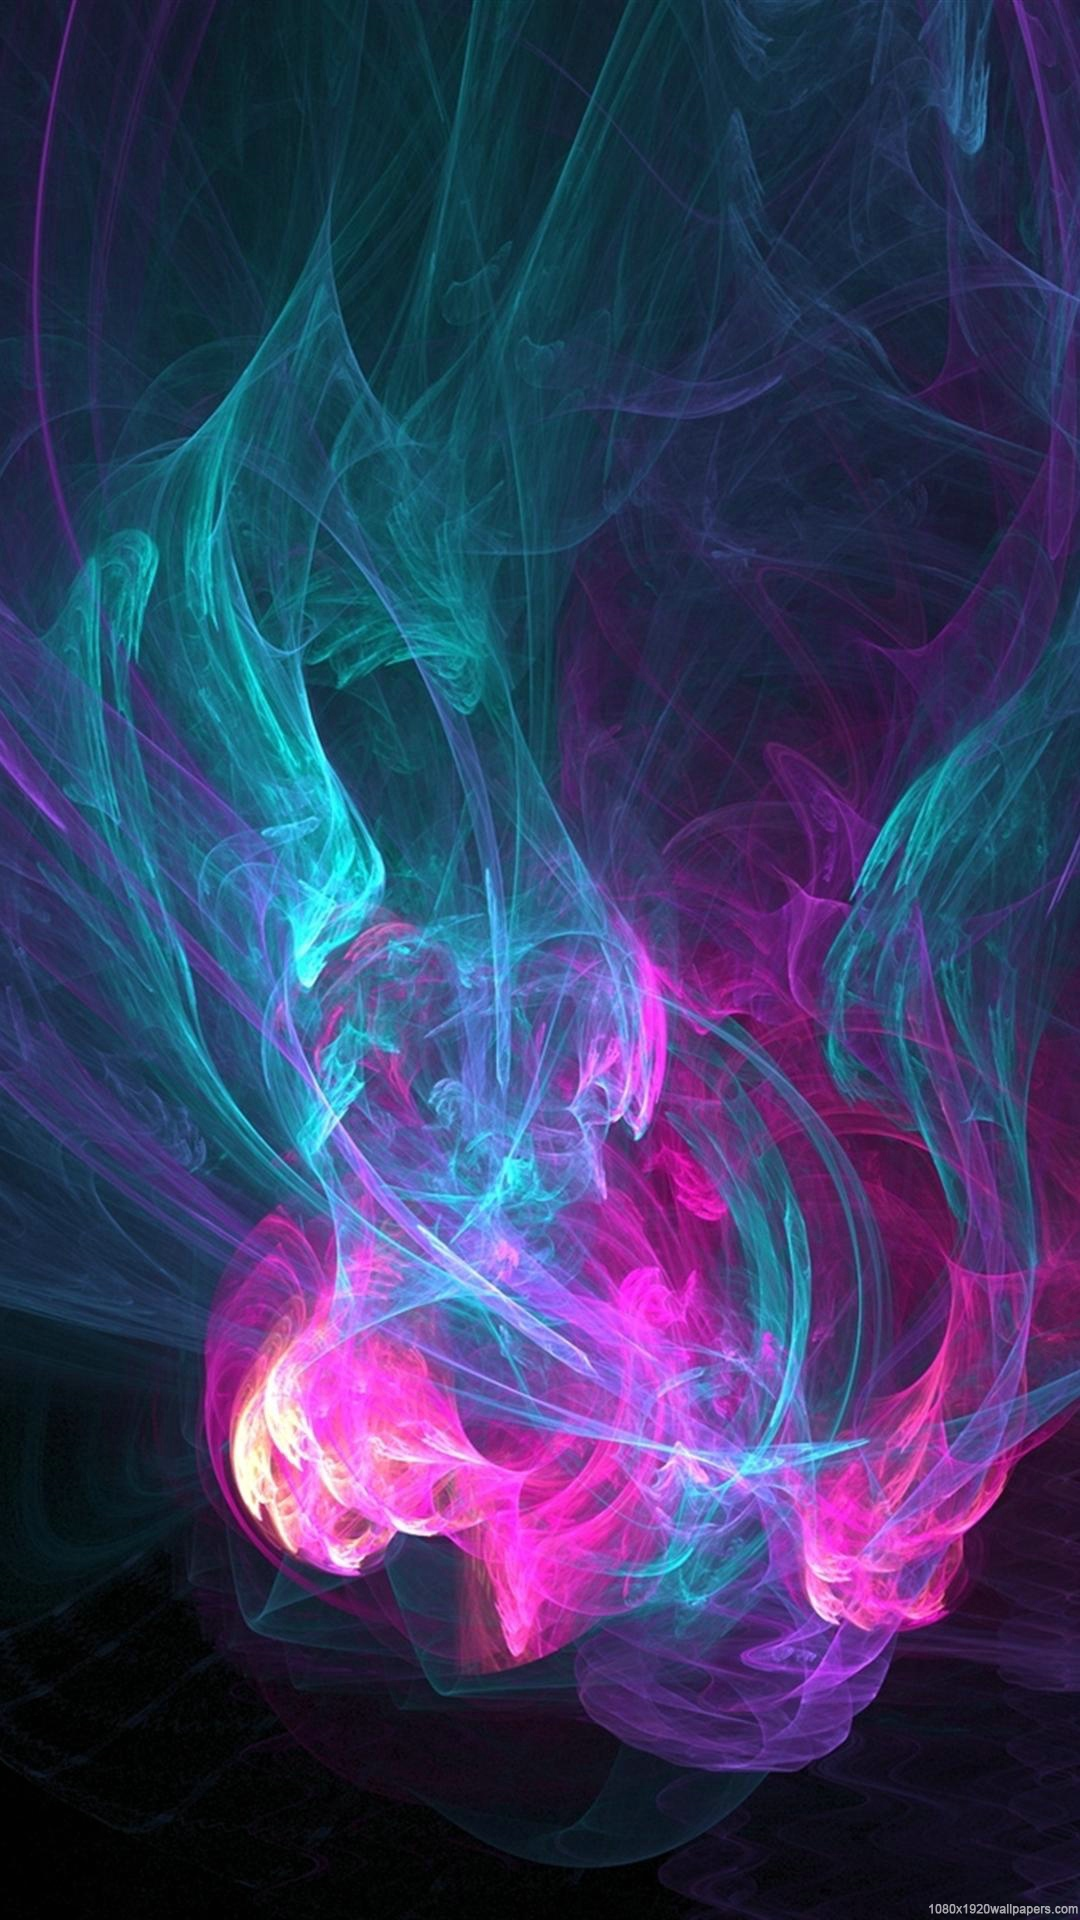 Abstract-Colored-Waves-1080x1920-Abstract-Need-iPhone-S-Plus-Background-for-IPh-wallpaper-wpc9002001